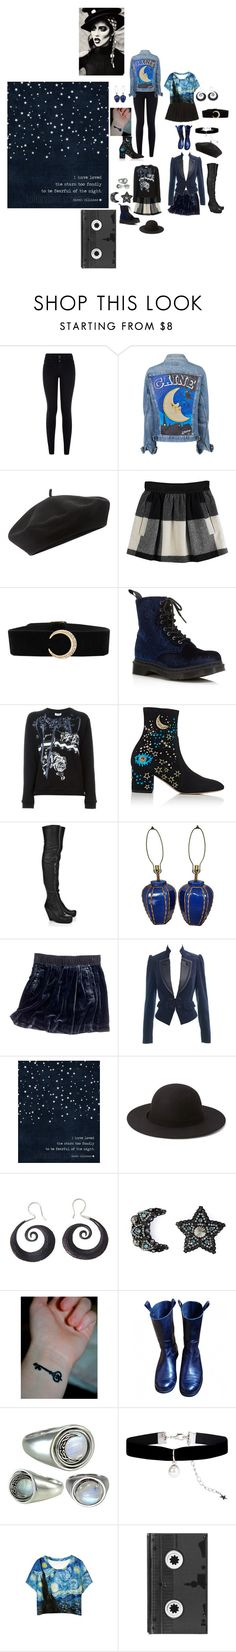 """""""night"""" by astral-leech ❤ liked on Polyvore featuring New Look, Accessorize, Opening Ceremony, Dr. Martens, Kenzo, Valentino, Rick Owens, Hellz, Madewell and Monsoon"""